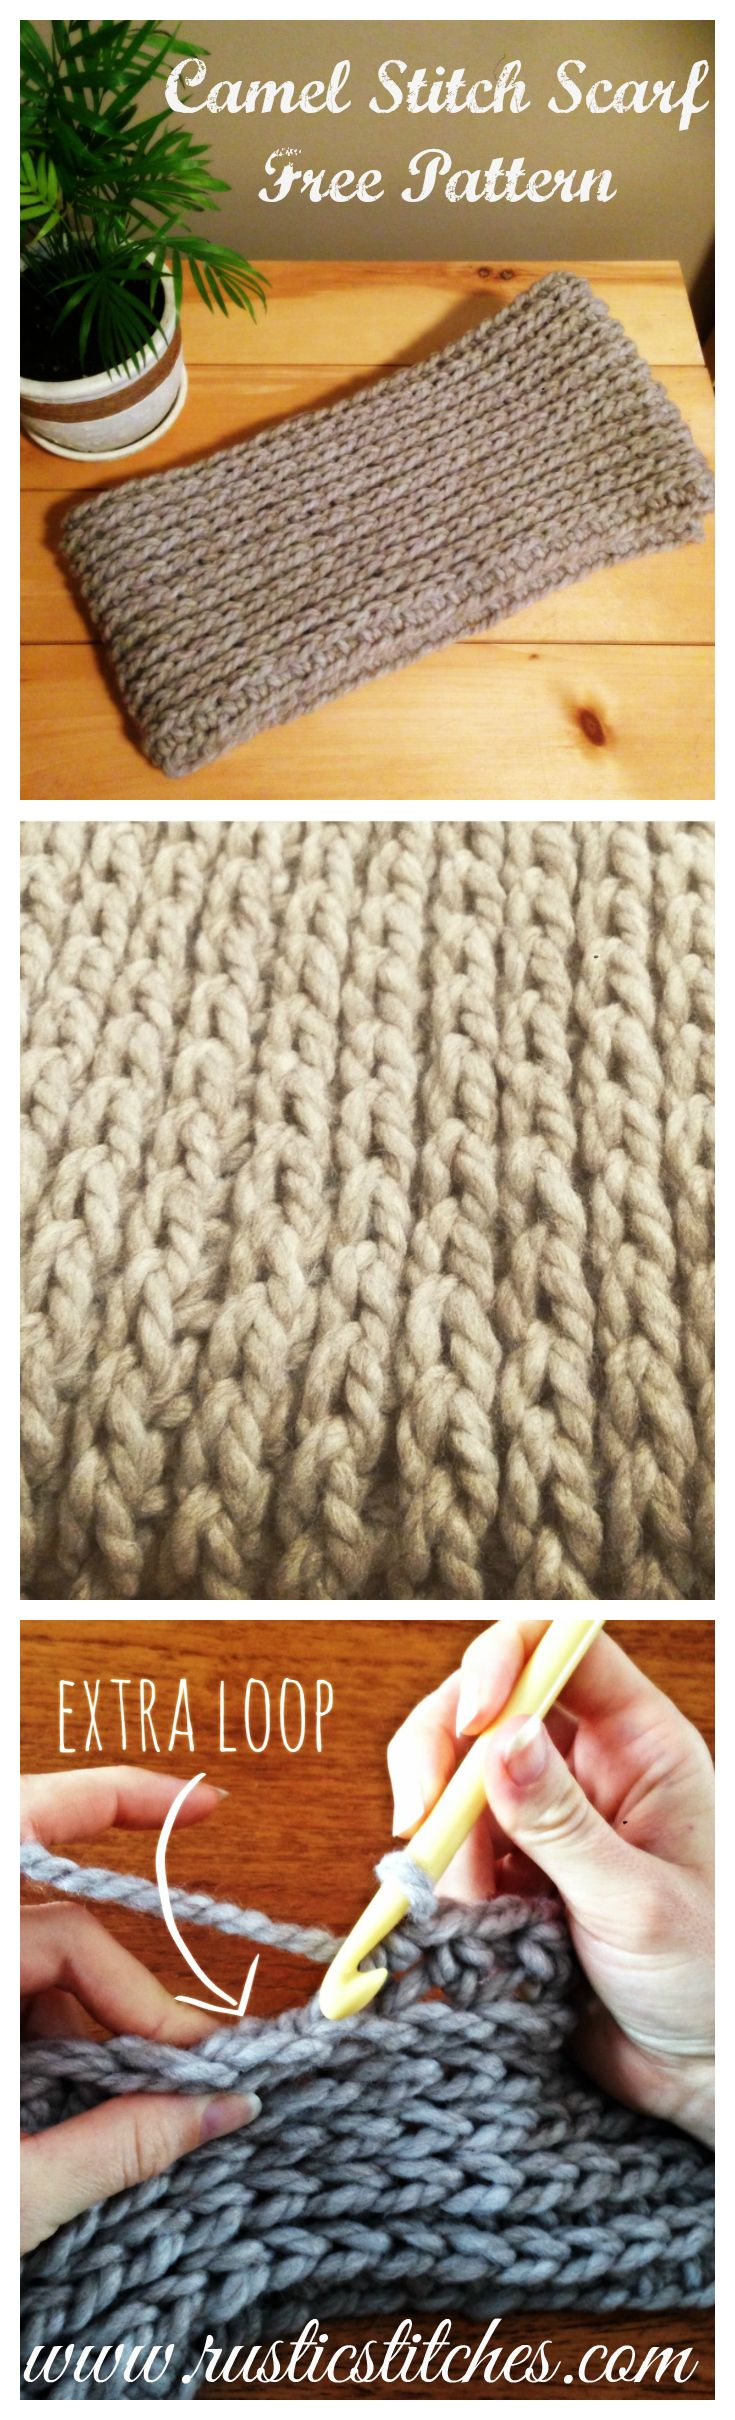 Knitting Vs Crocheting Which Is Easier : Best images about patterns tutorials knit crochet